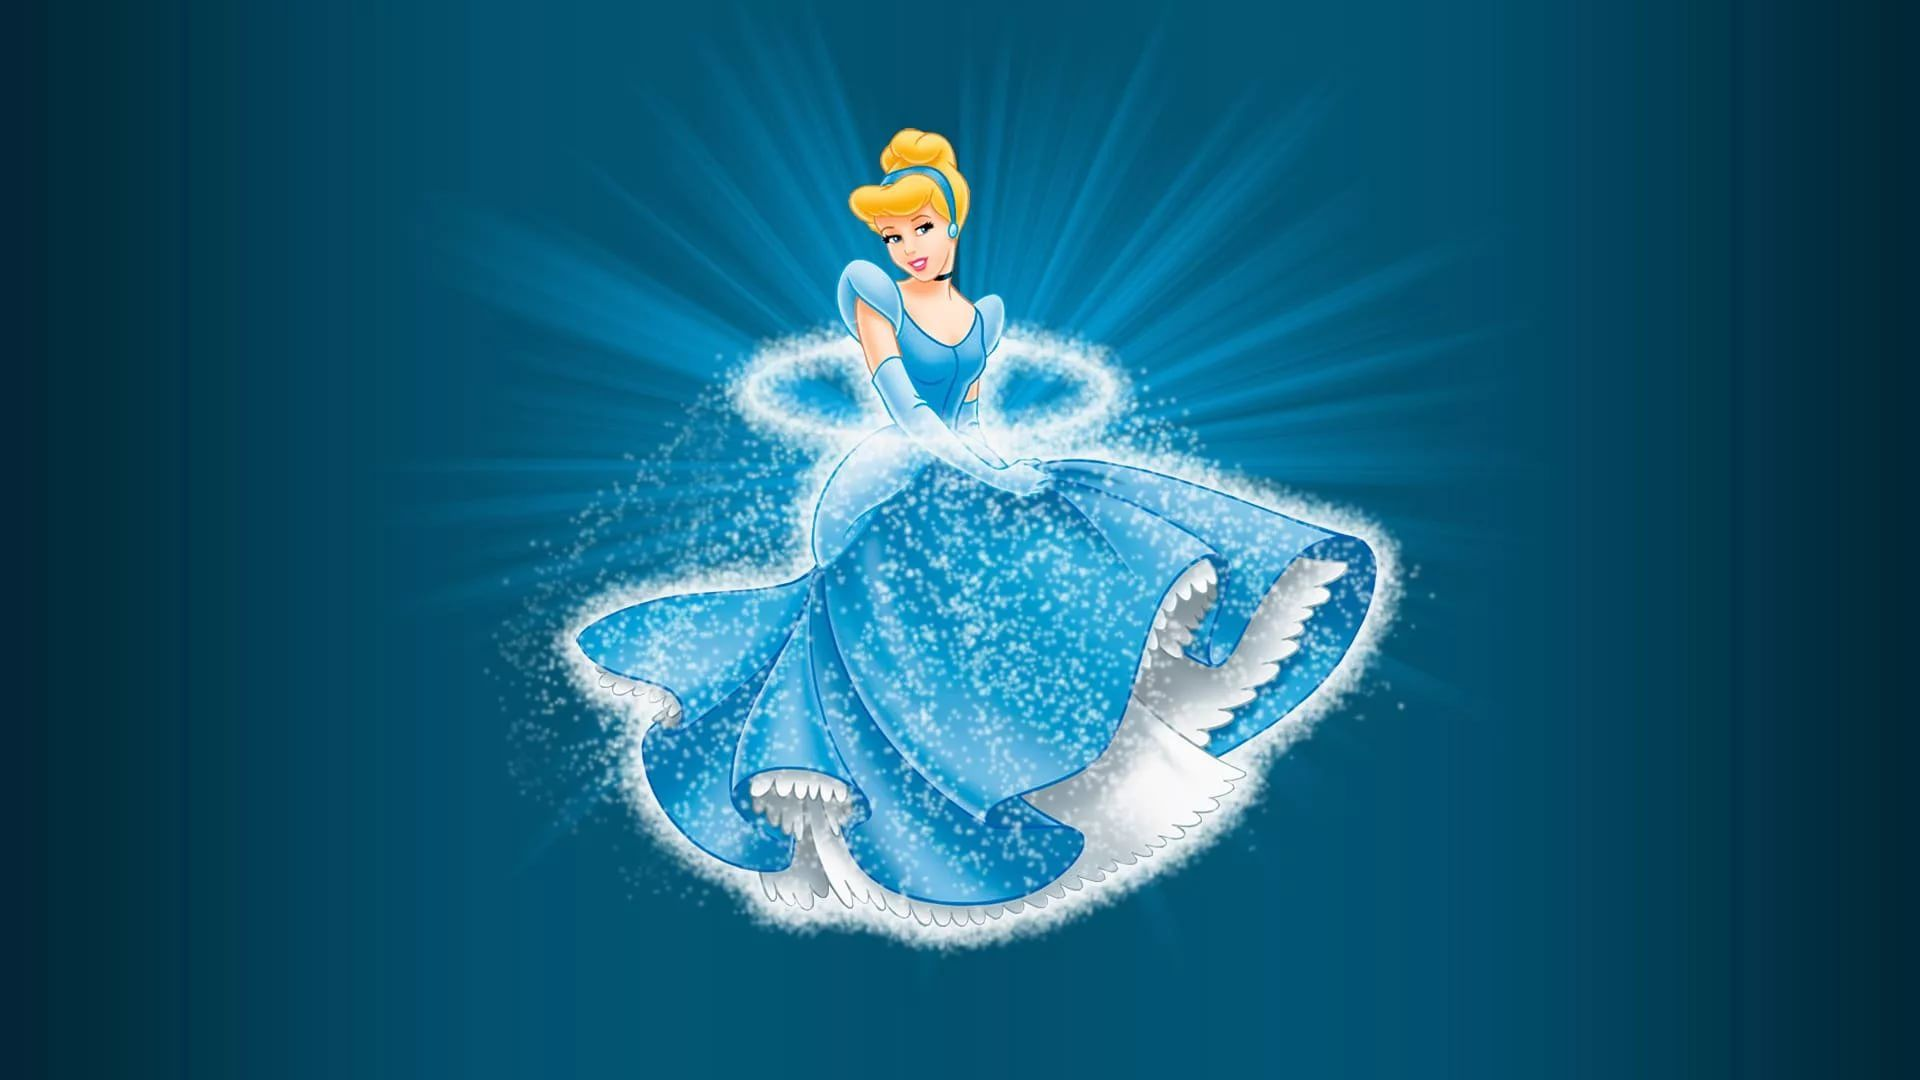 Cinderella background wallpaper